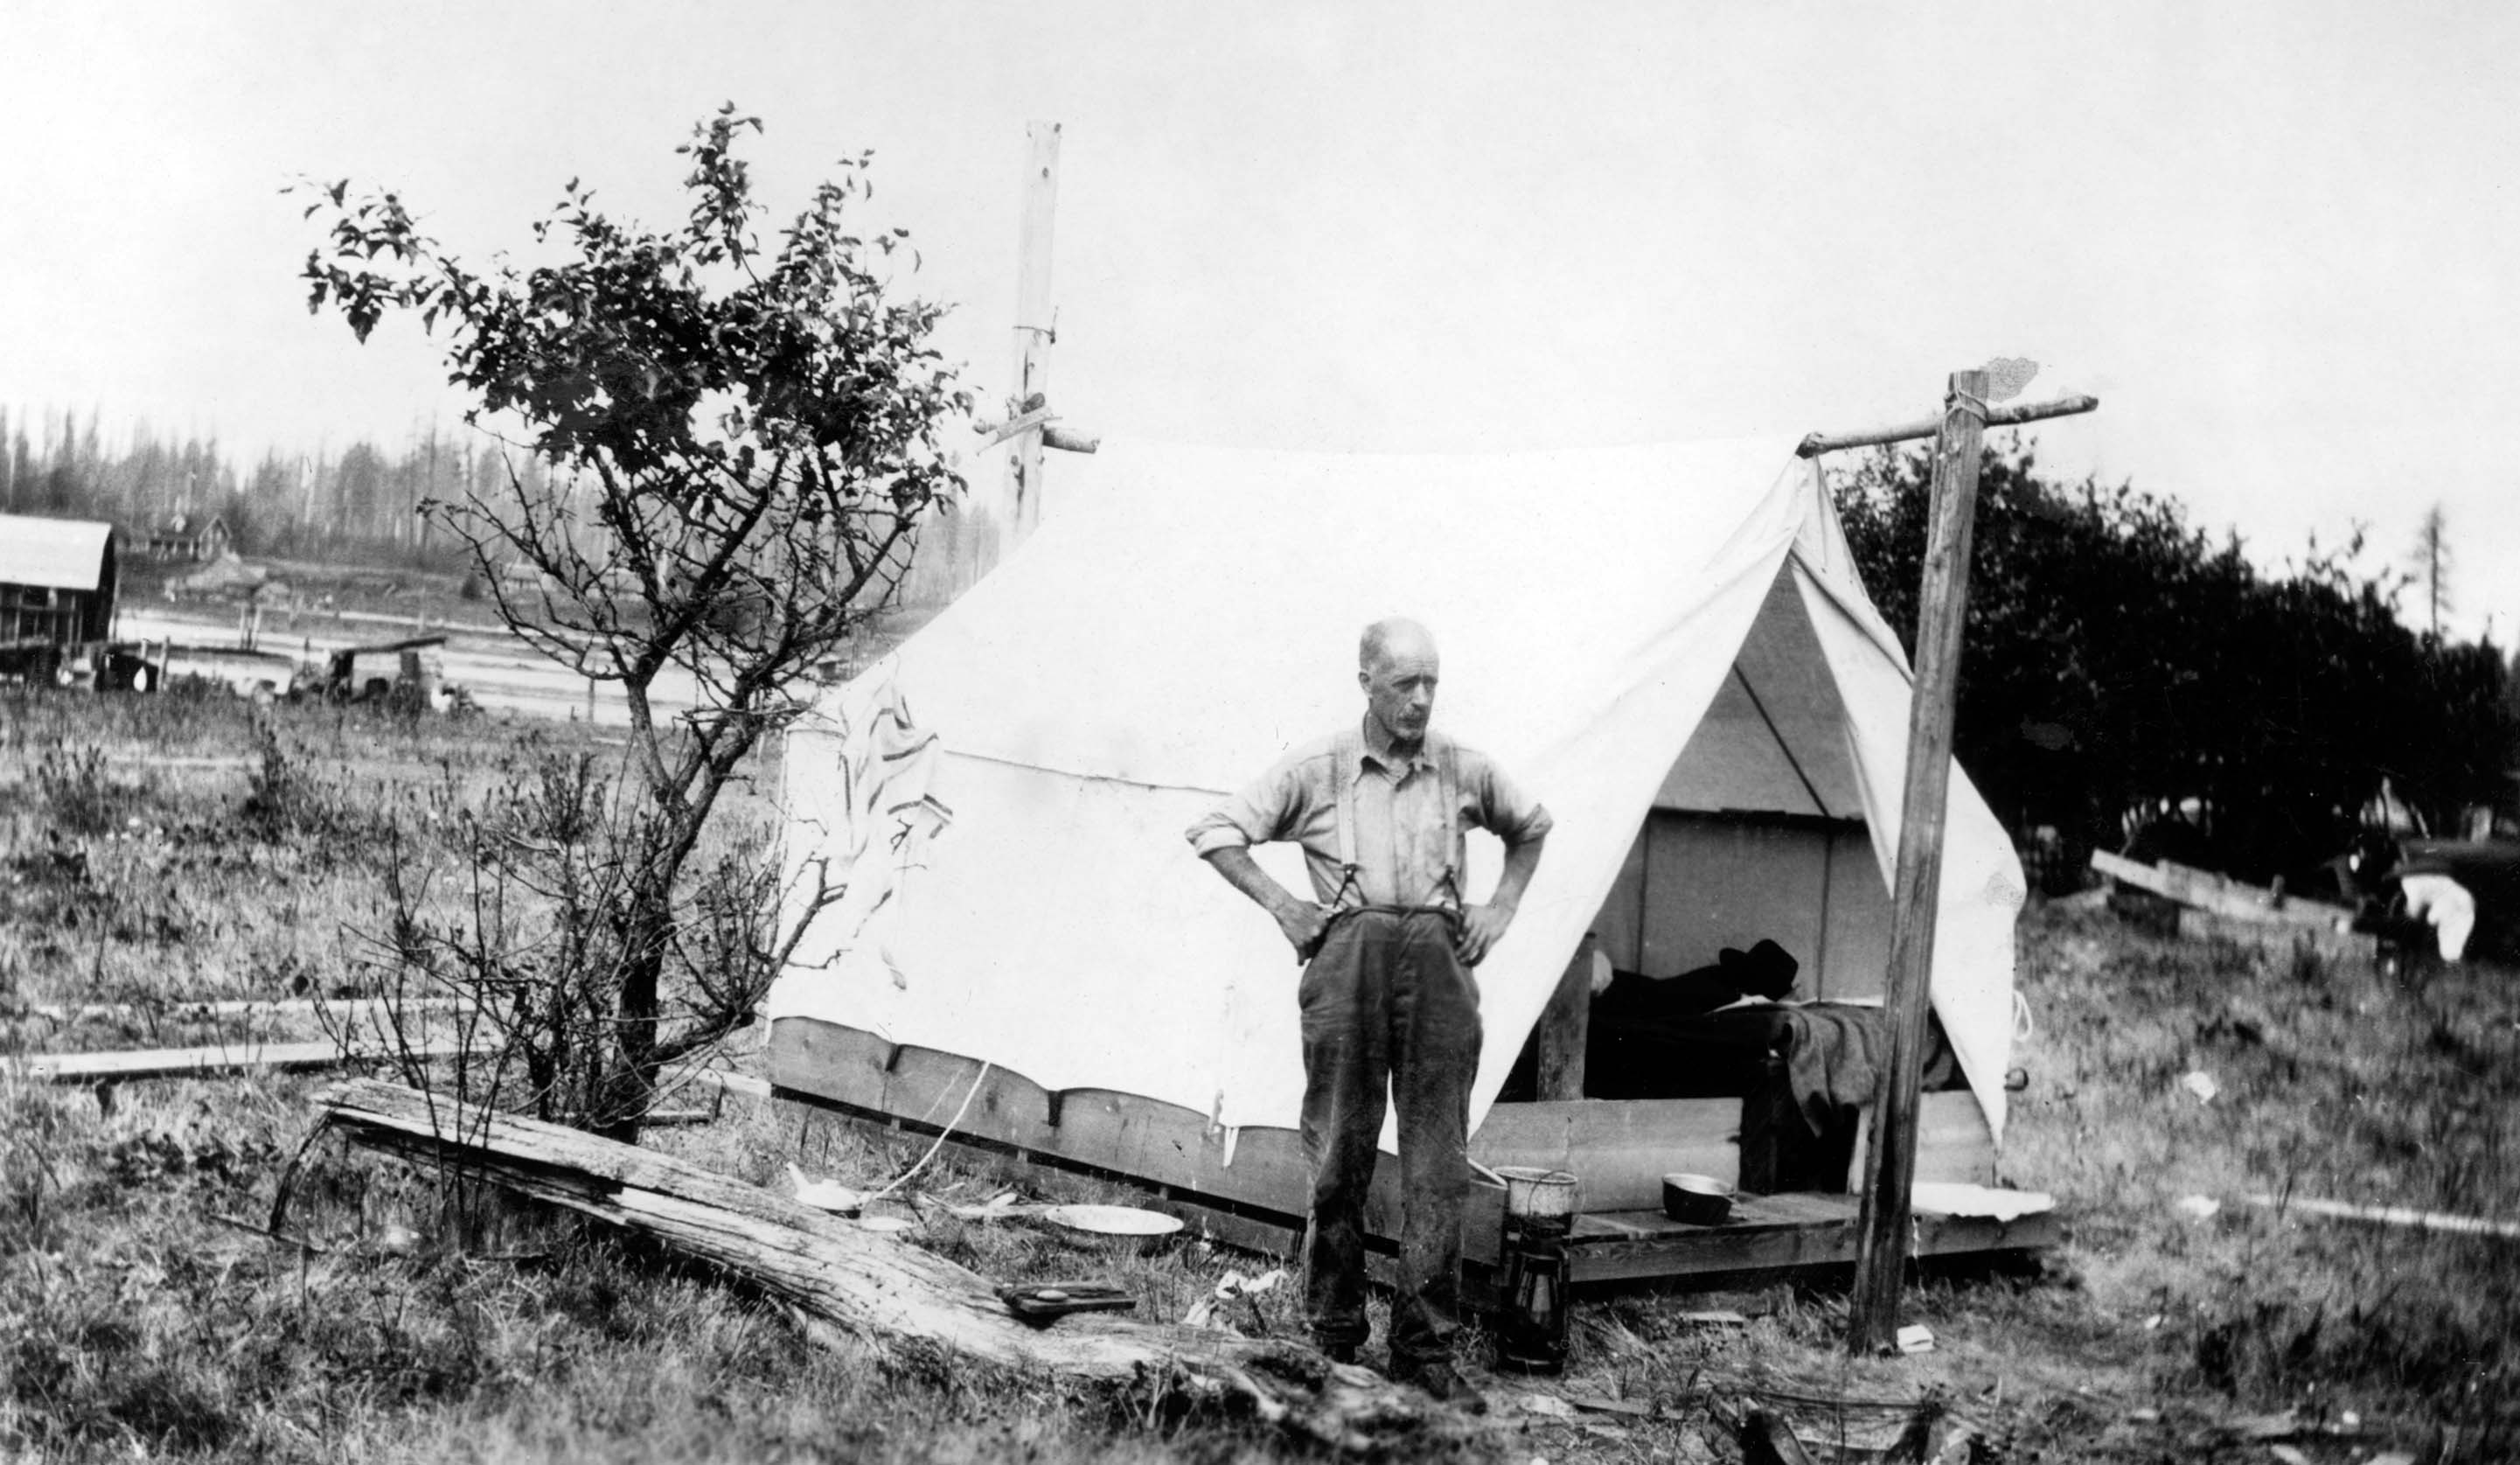 H. Smith by his tent on the Campbell River spit.